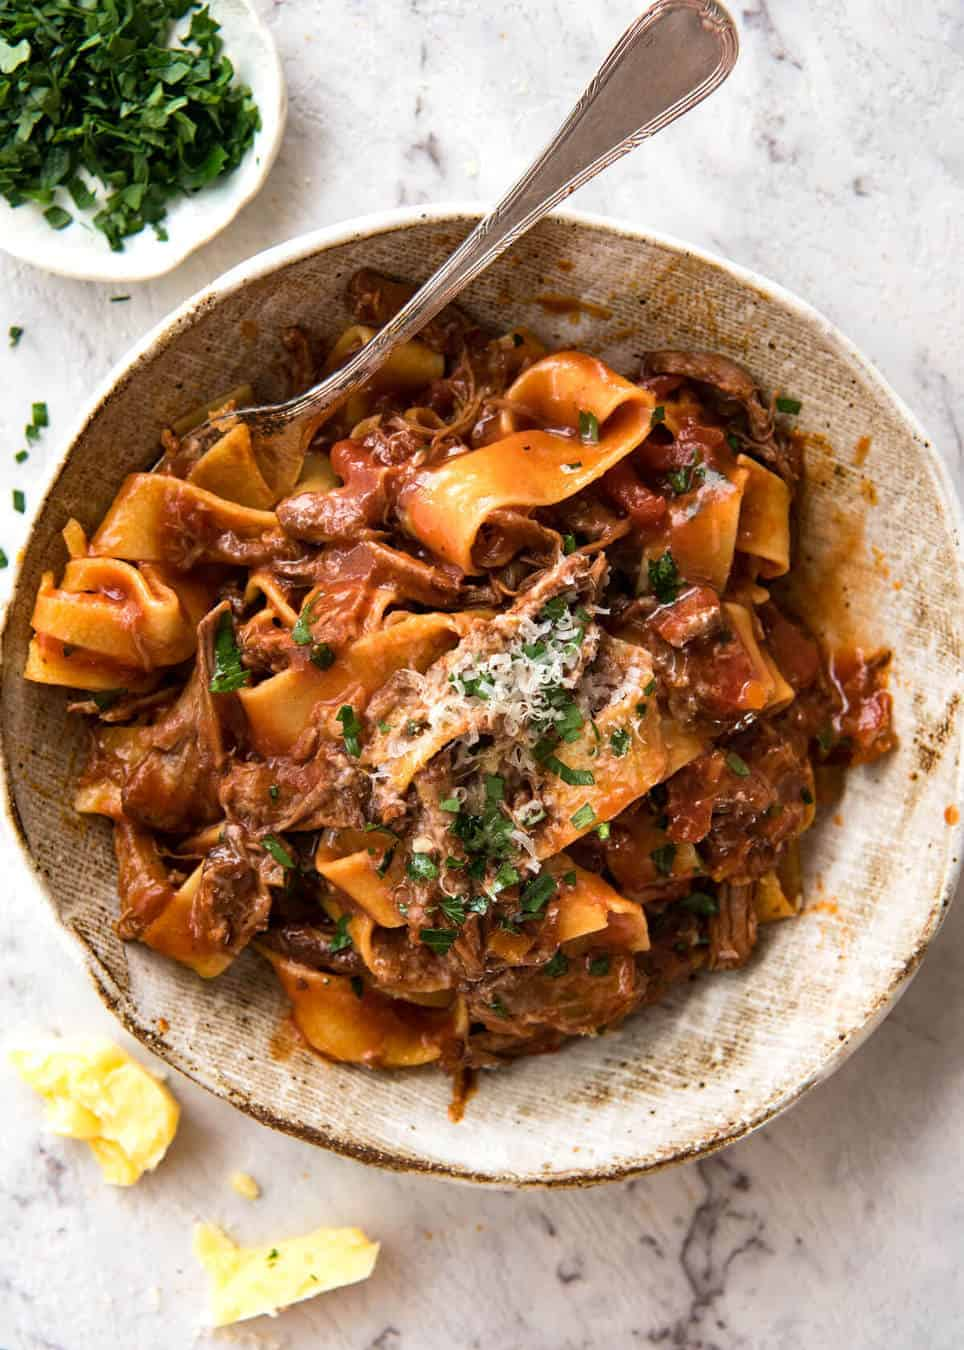 Slow Cooked Shredded Beef Ragu Pasta | RecipeTin Eats